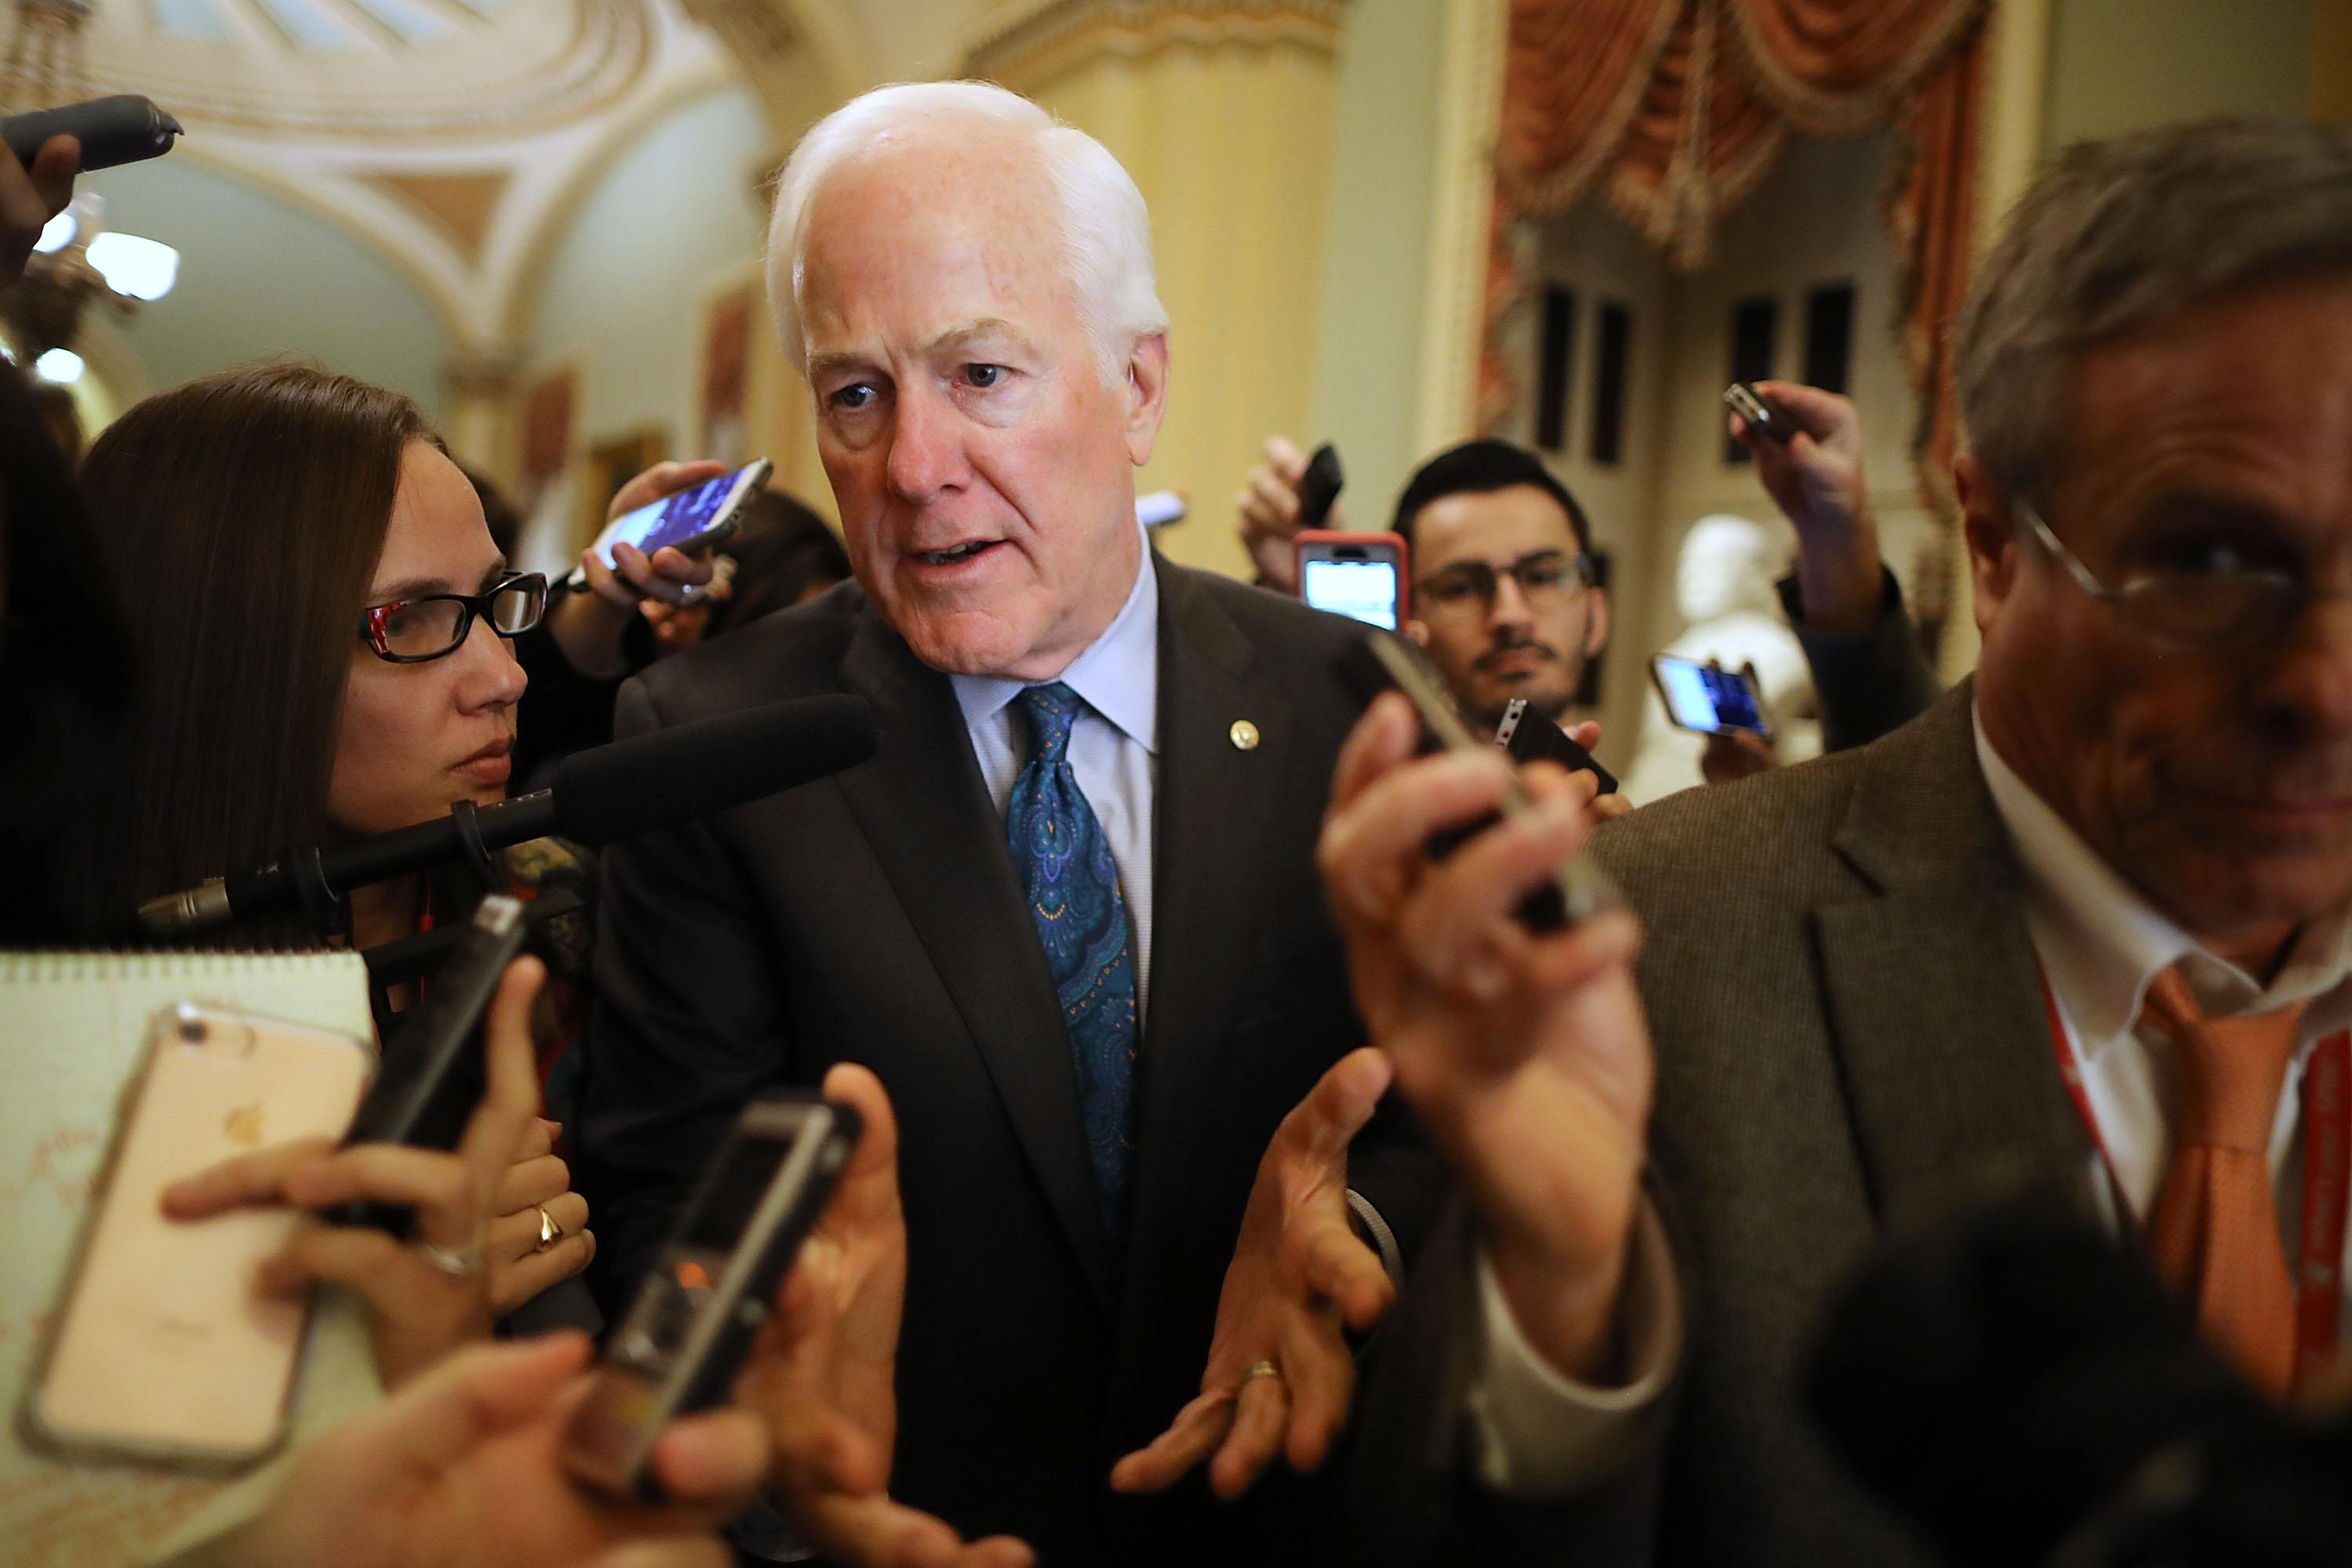 WASHINGTON, DC - NOVEMBER 30:  Senate Majority Whip John Cornyn (R-TX) talks to reporters at the U.S. Capitol November 30, 2017 in Washington, DC. The Senate is debating the proposed GOP tax reform bill and hopes to pass it before the end of the week.  (Photo by Chip Somodevilla/Getty Images)